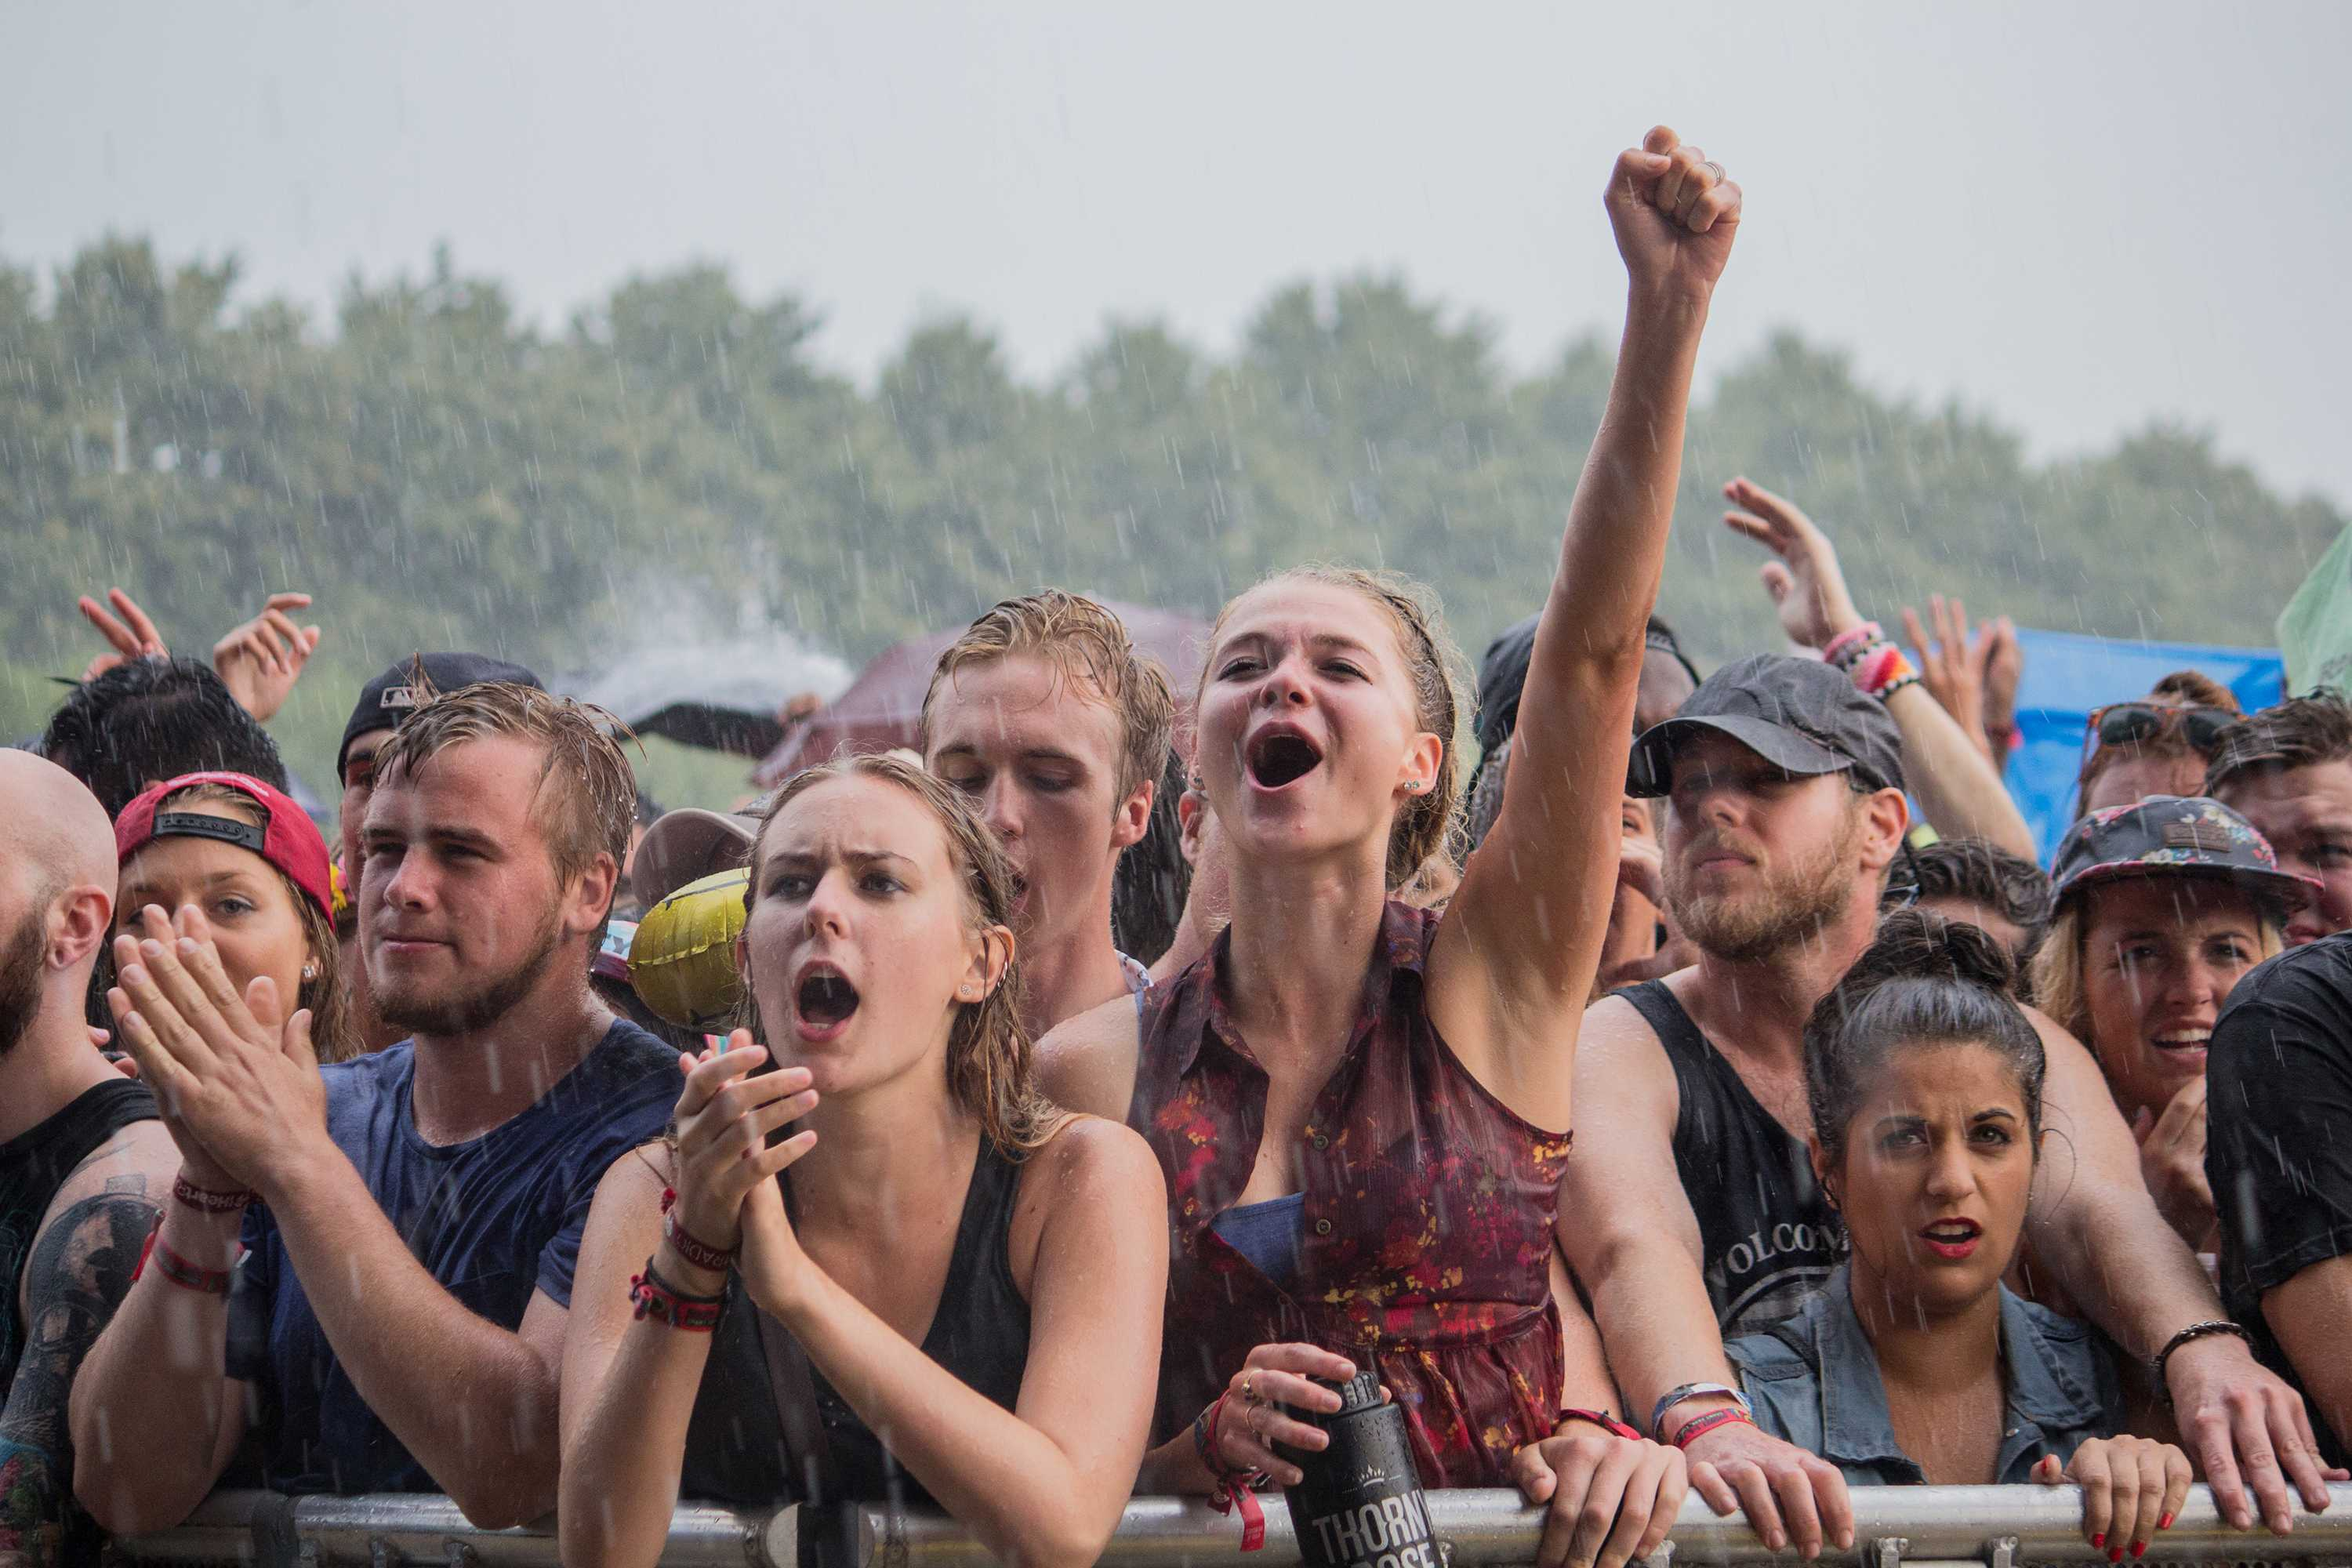 The crowd endures the rain during Lollapalooza 2014. (Courtney Jacquin / The DePaulia)